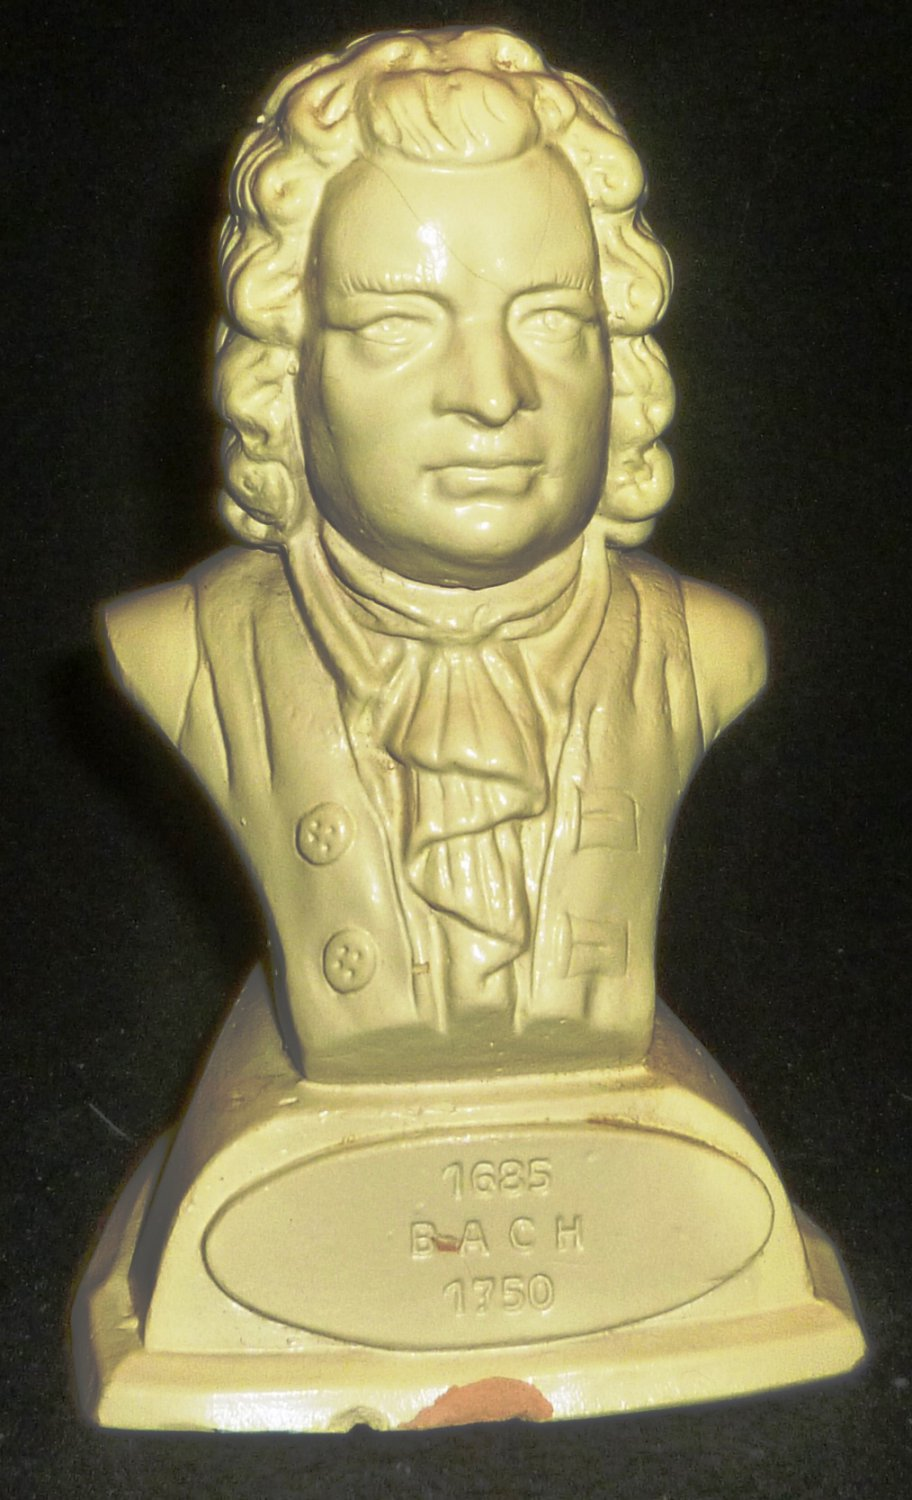 VINTAGE CLASSIC COMPOSER COLLECTION PLASTER BUST FIGURINE BACH 1685-1750